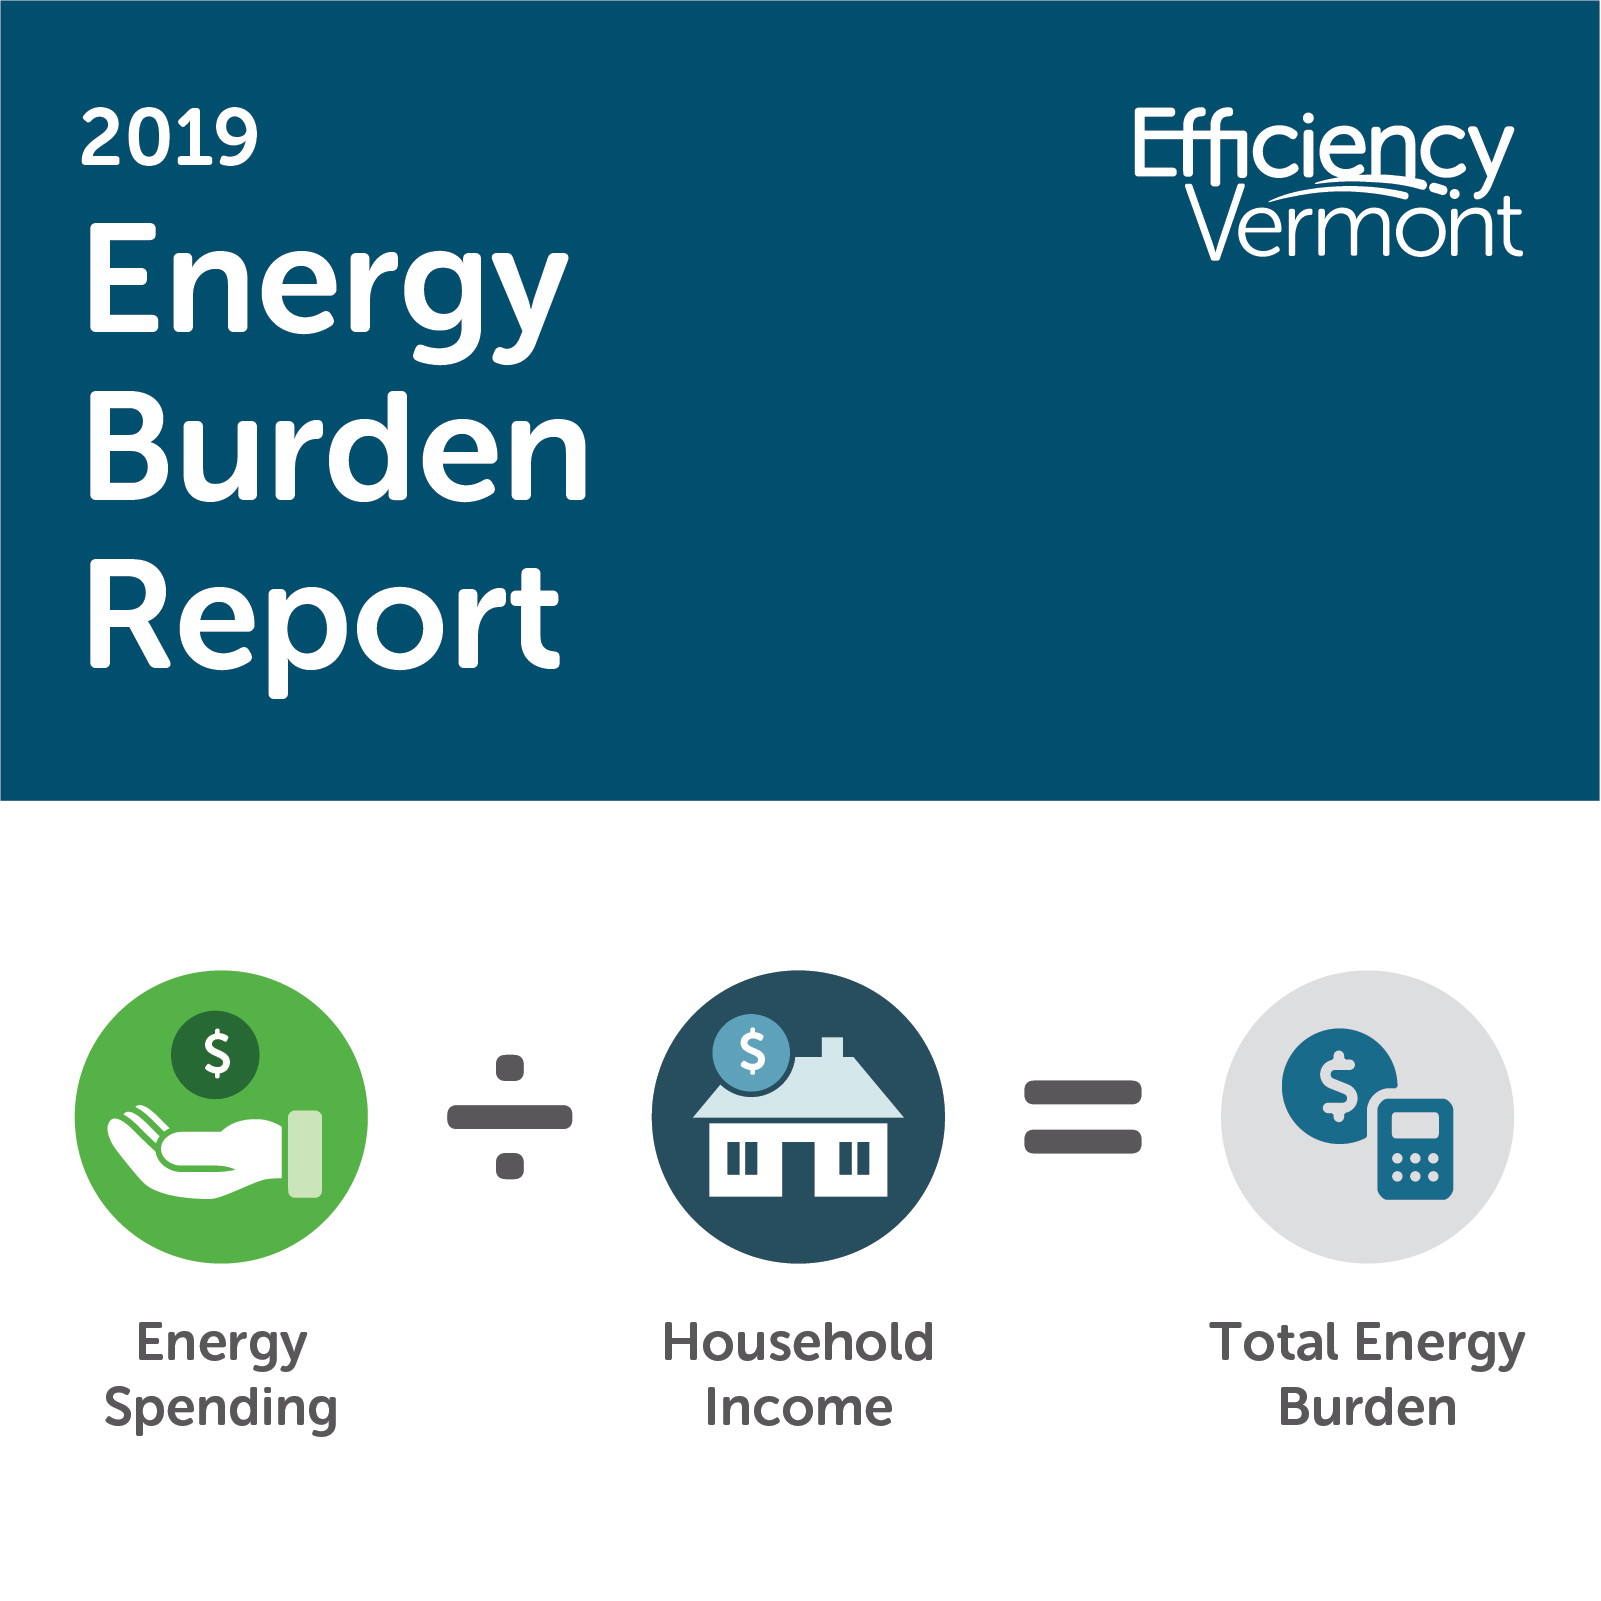 2019 Energy Burden Report graphic